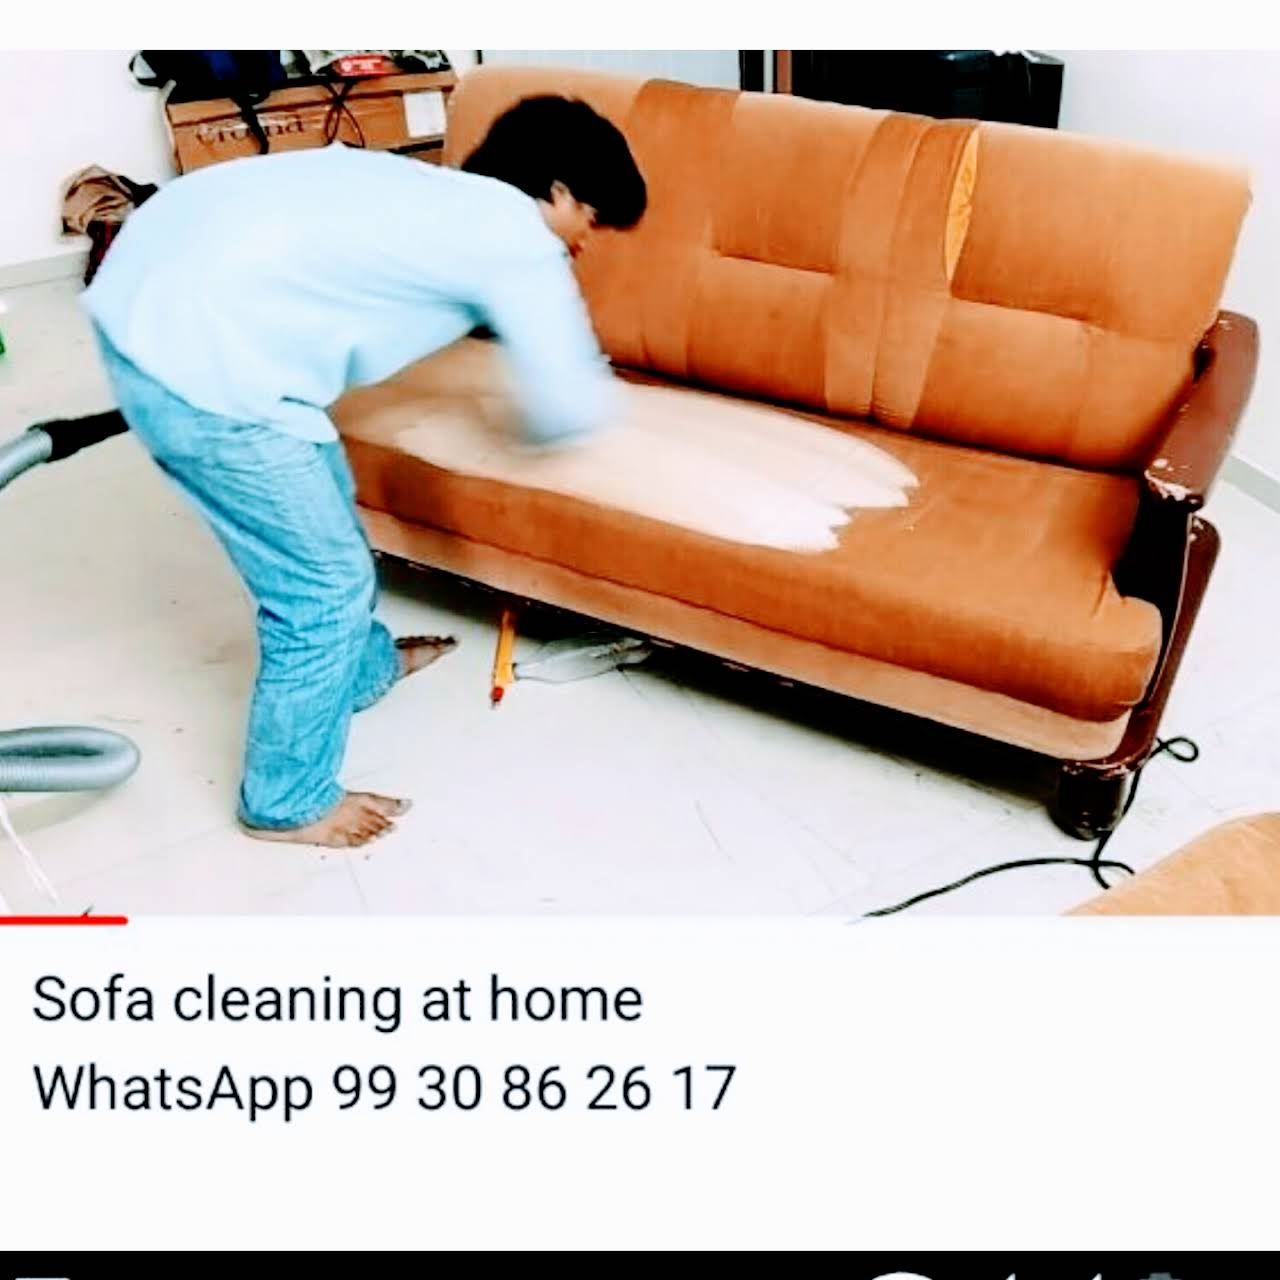 a1 sofa cleaning navi mumbai maharashtra elastic covers uk z s enterprises cleaner repair furniture polish professional service